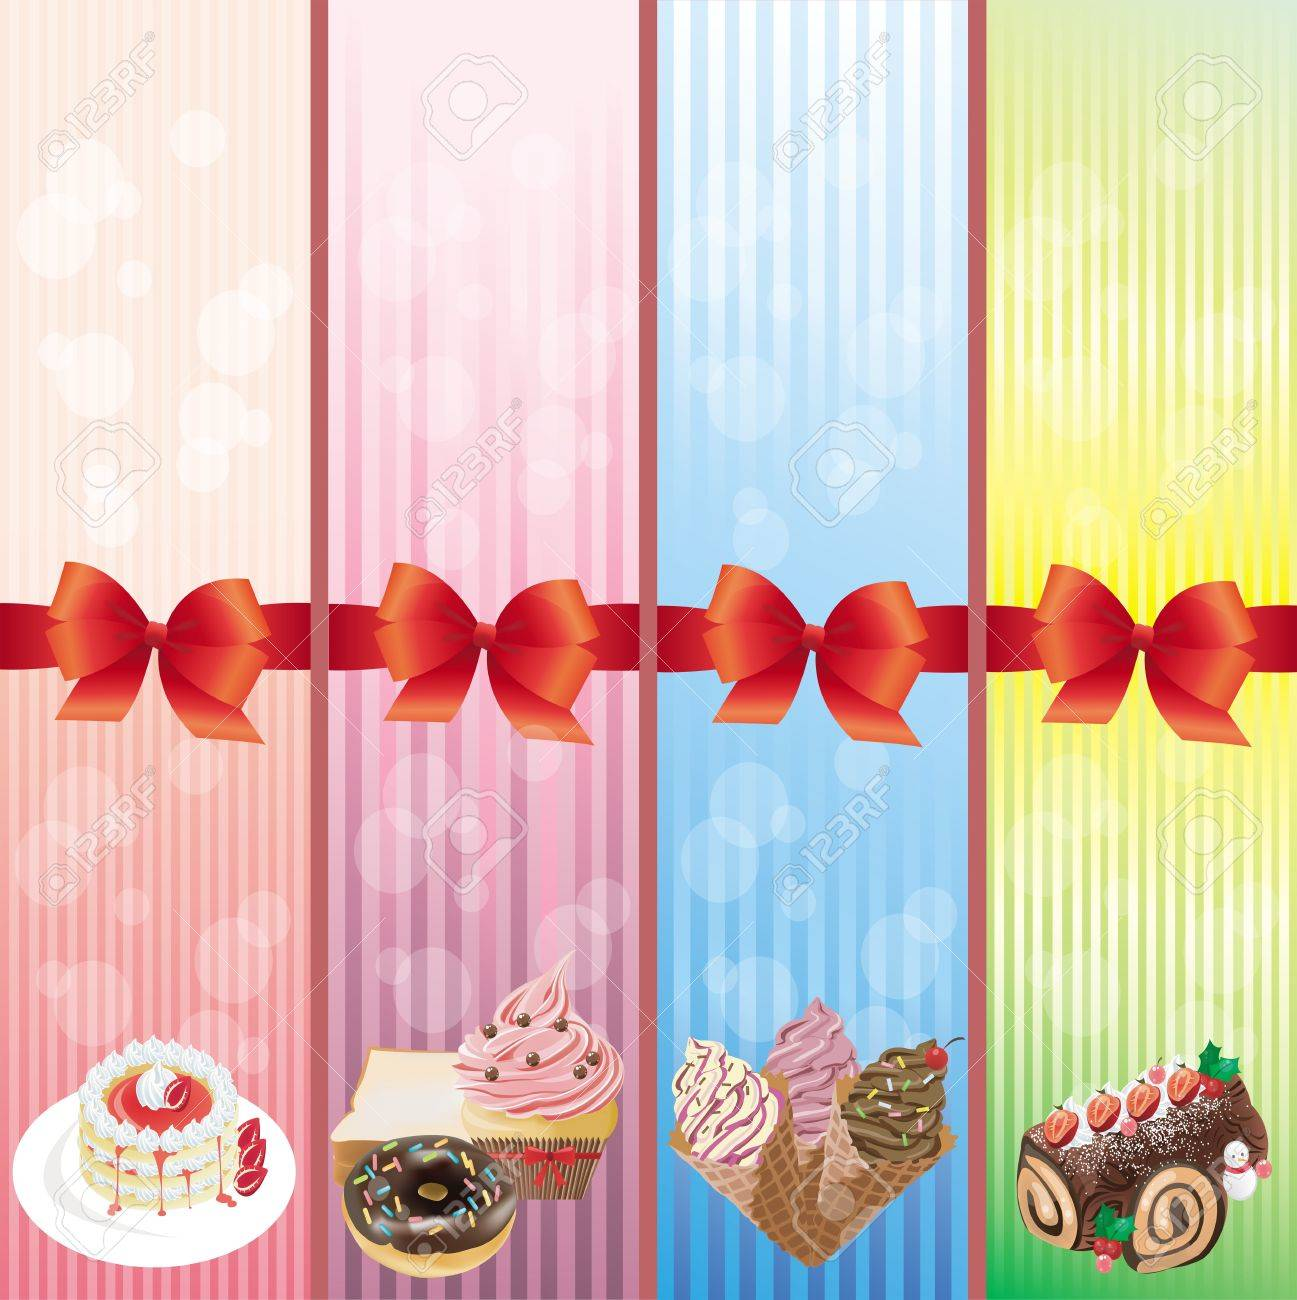 Sweets and dessert banner collection Stock Vector - 17046667